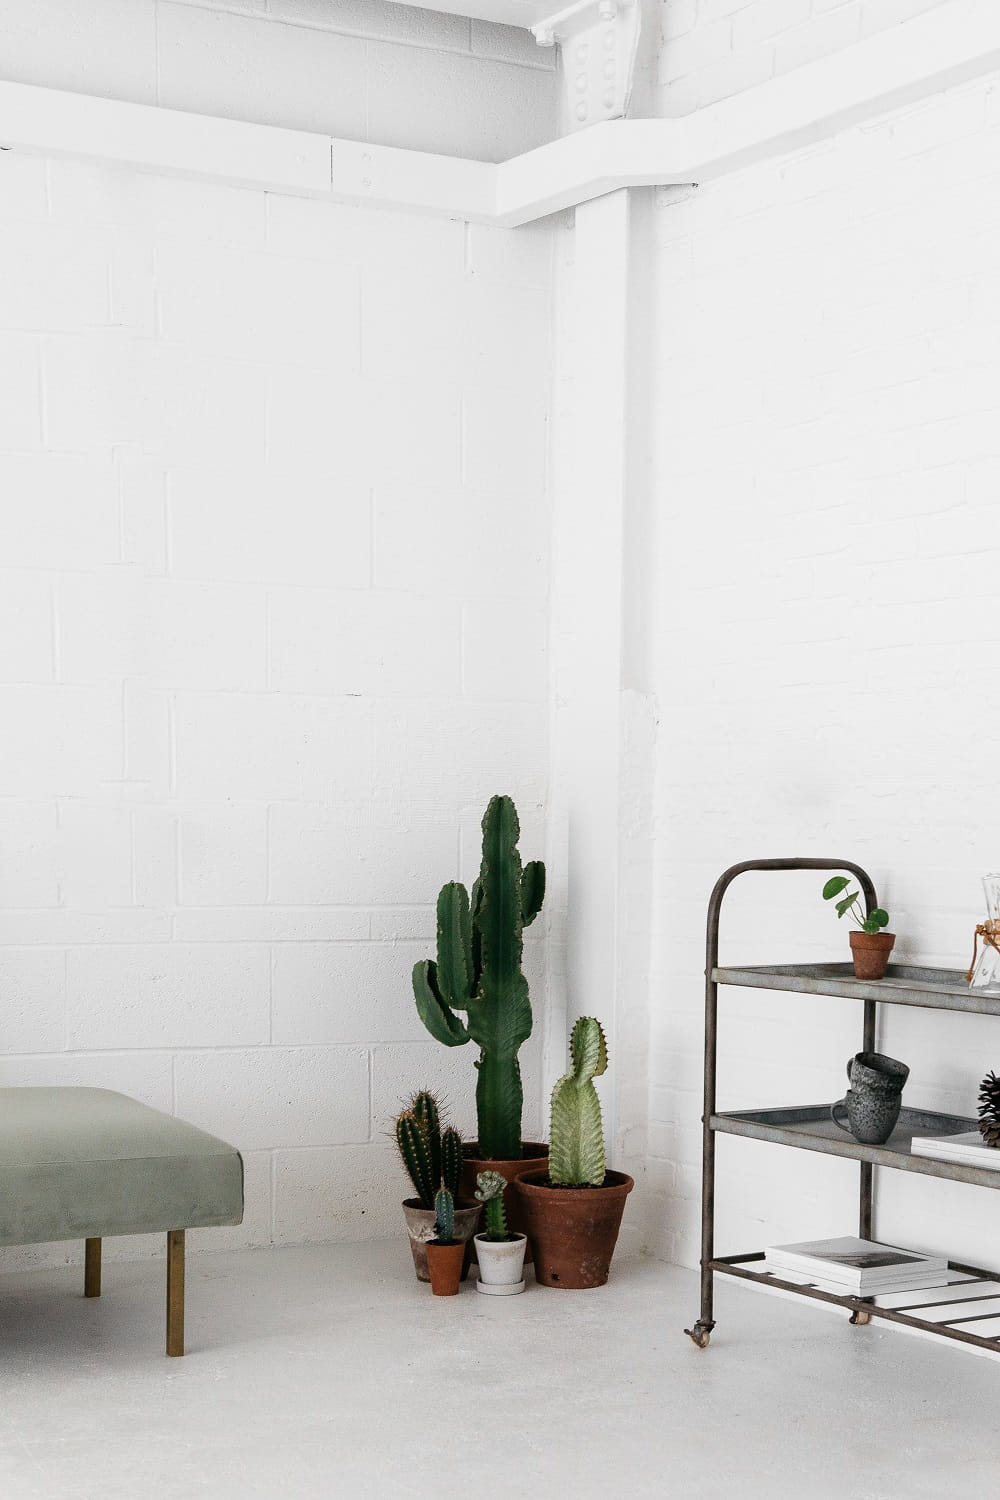 Industrial Kitchen Studio 8A by Rye London – Design. / Visual.